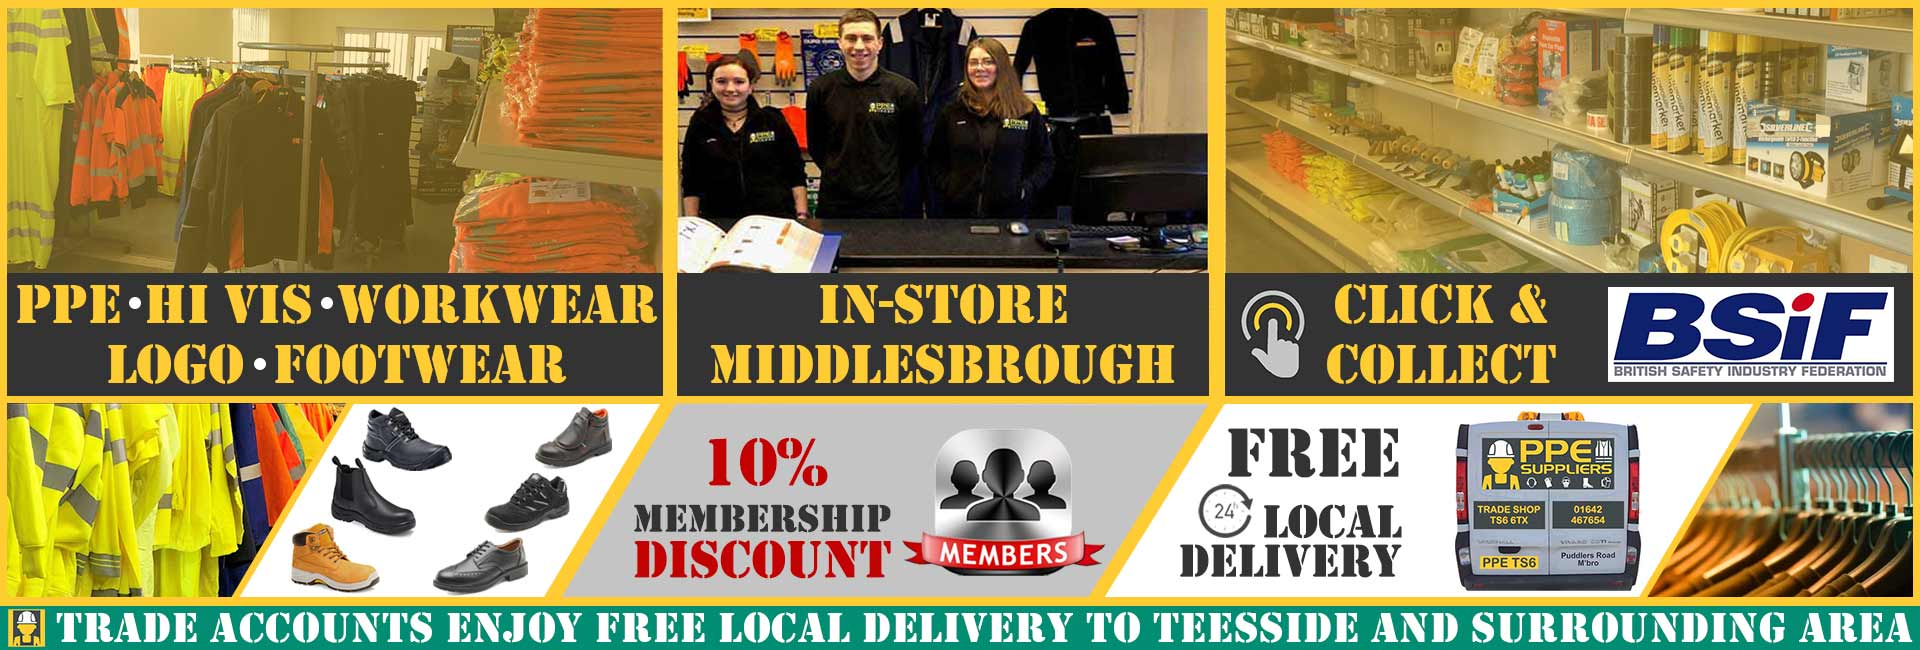 Safety-Equipment-Store-In-Middlesbrough